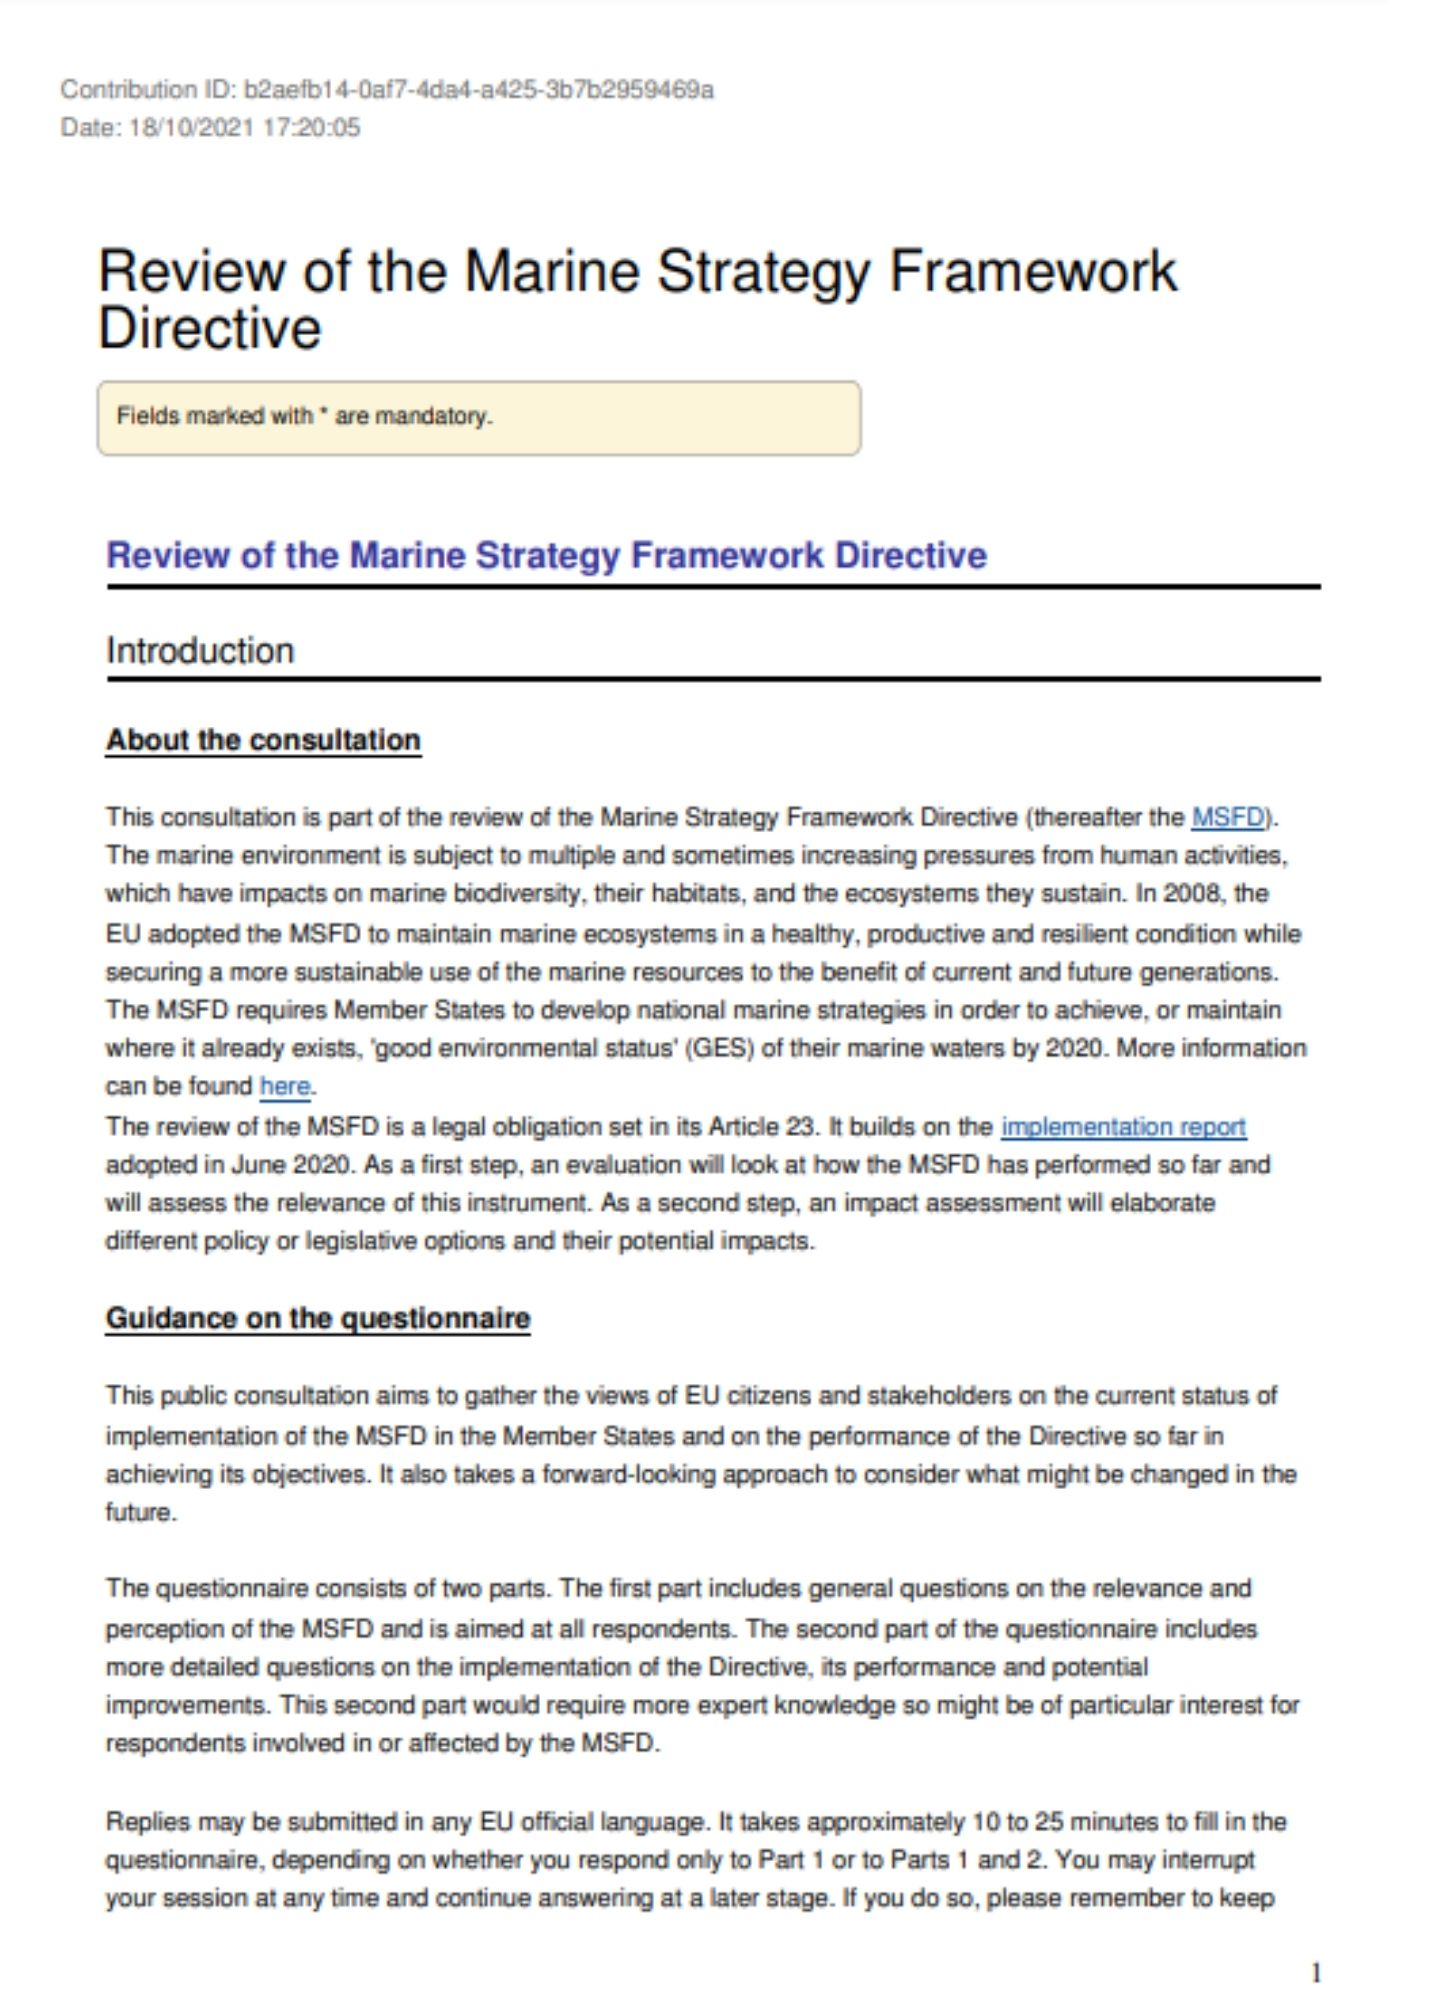 Contribution to the Public Consultation on the Marine Strategy